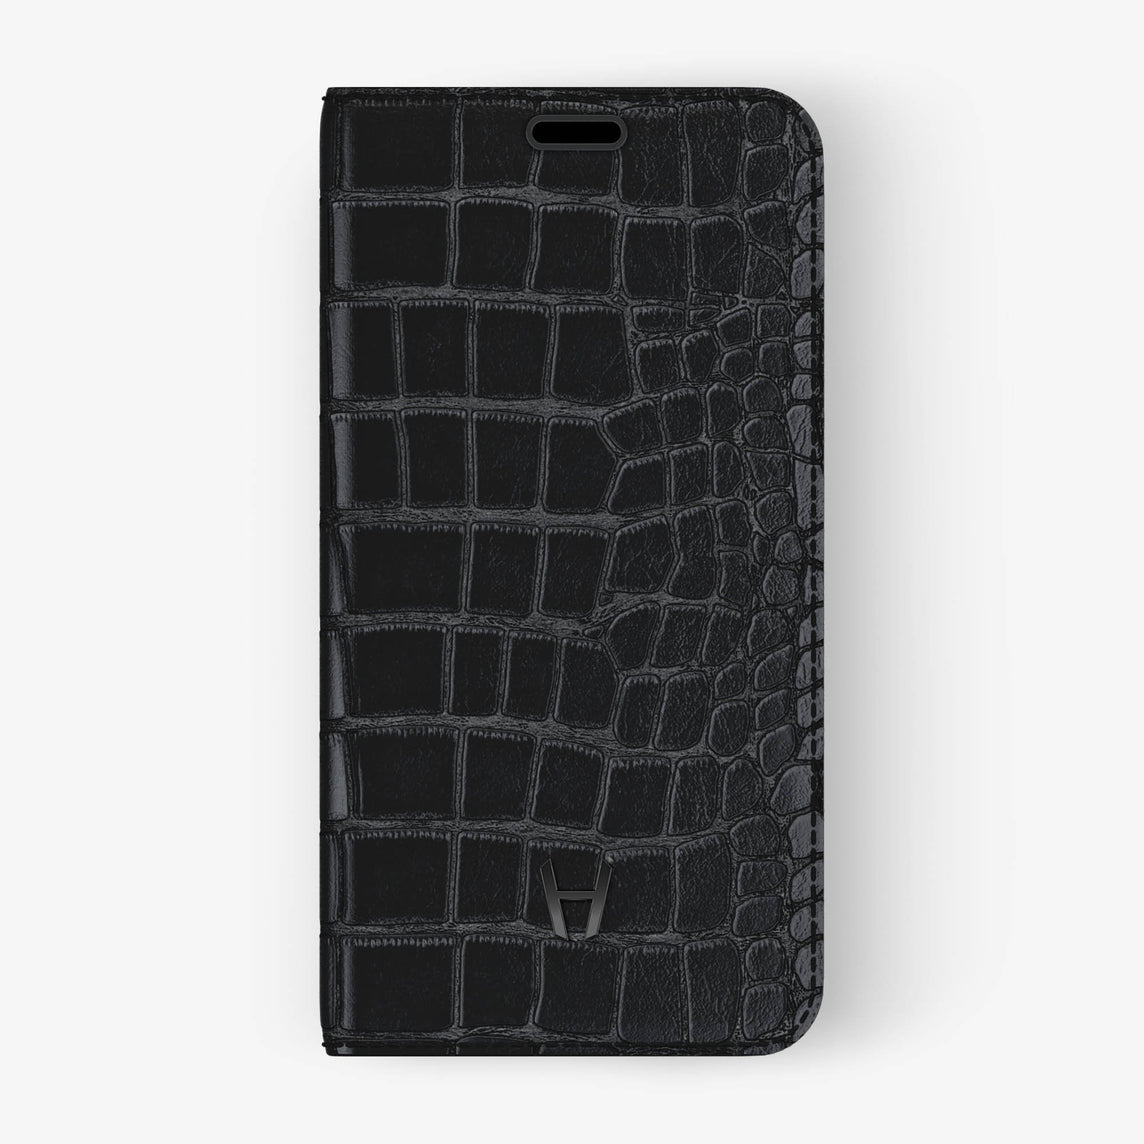 Black Alligator iPhone Folio Case for iPhone X finishing black - Hadoro Luxury Cases